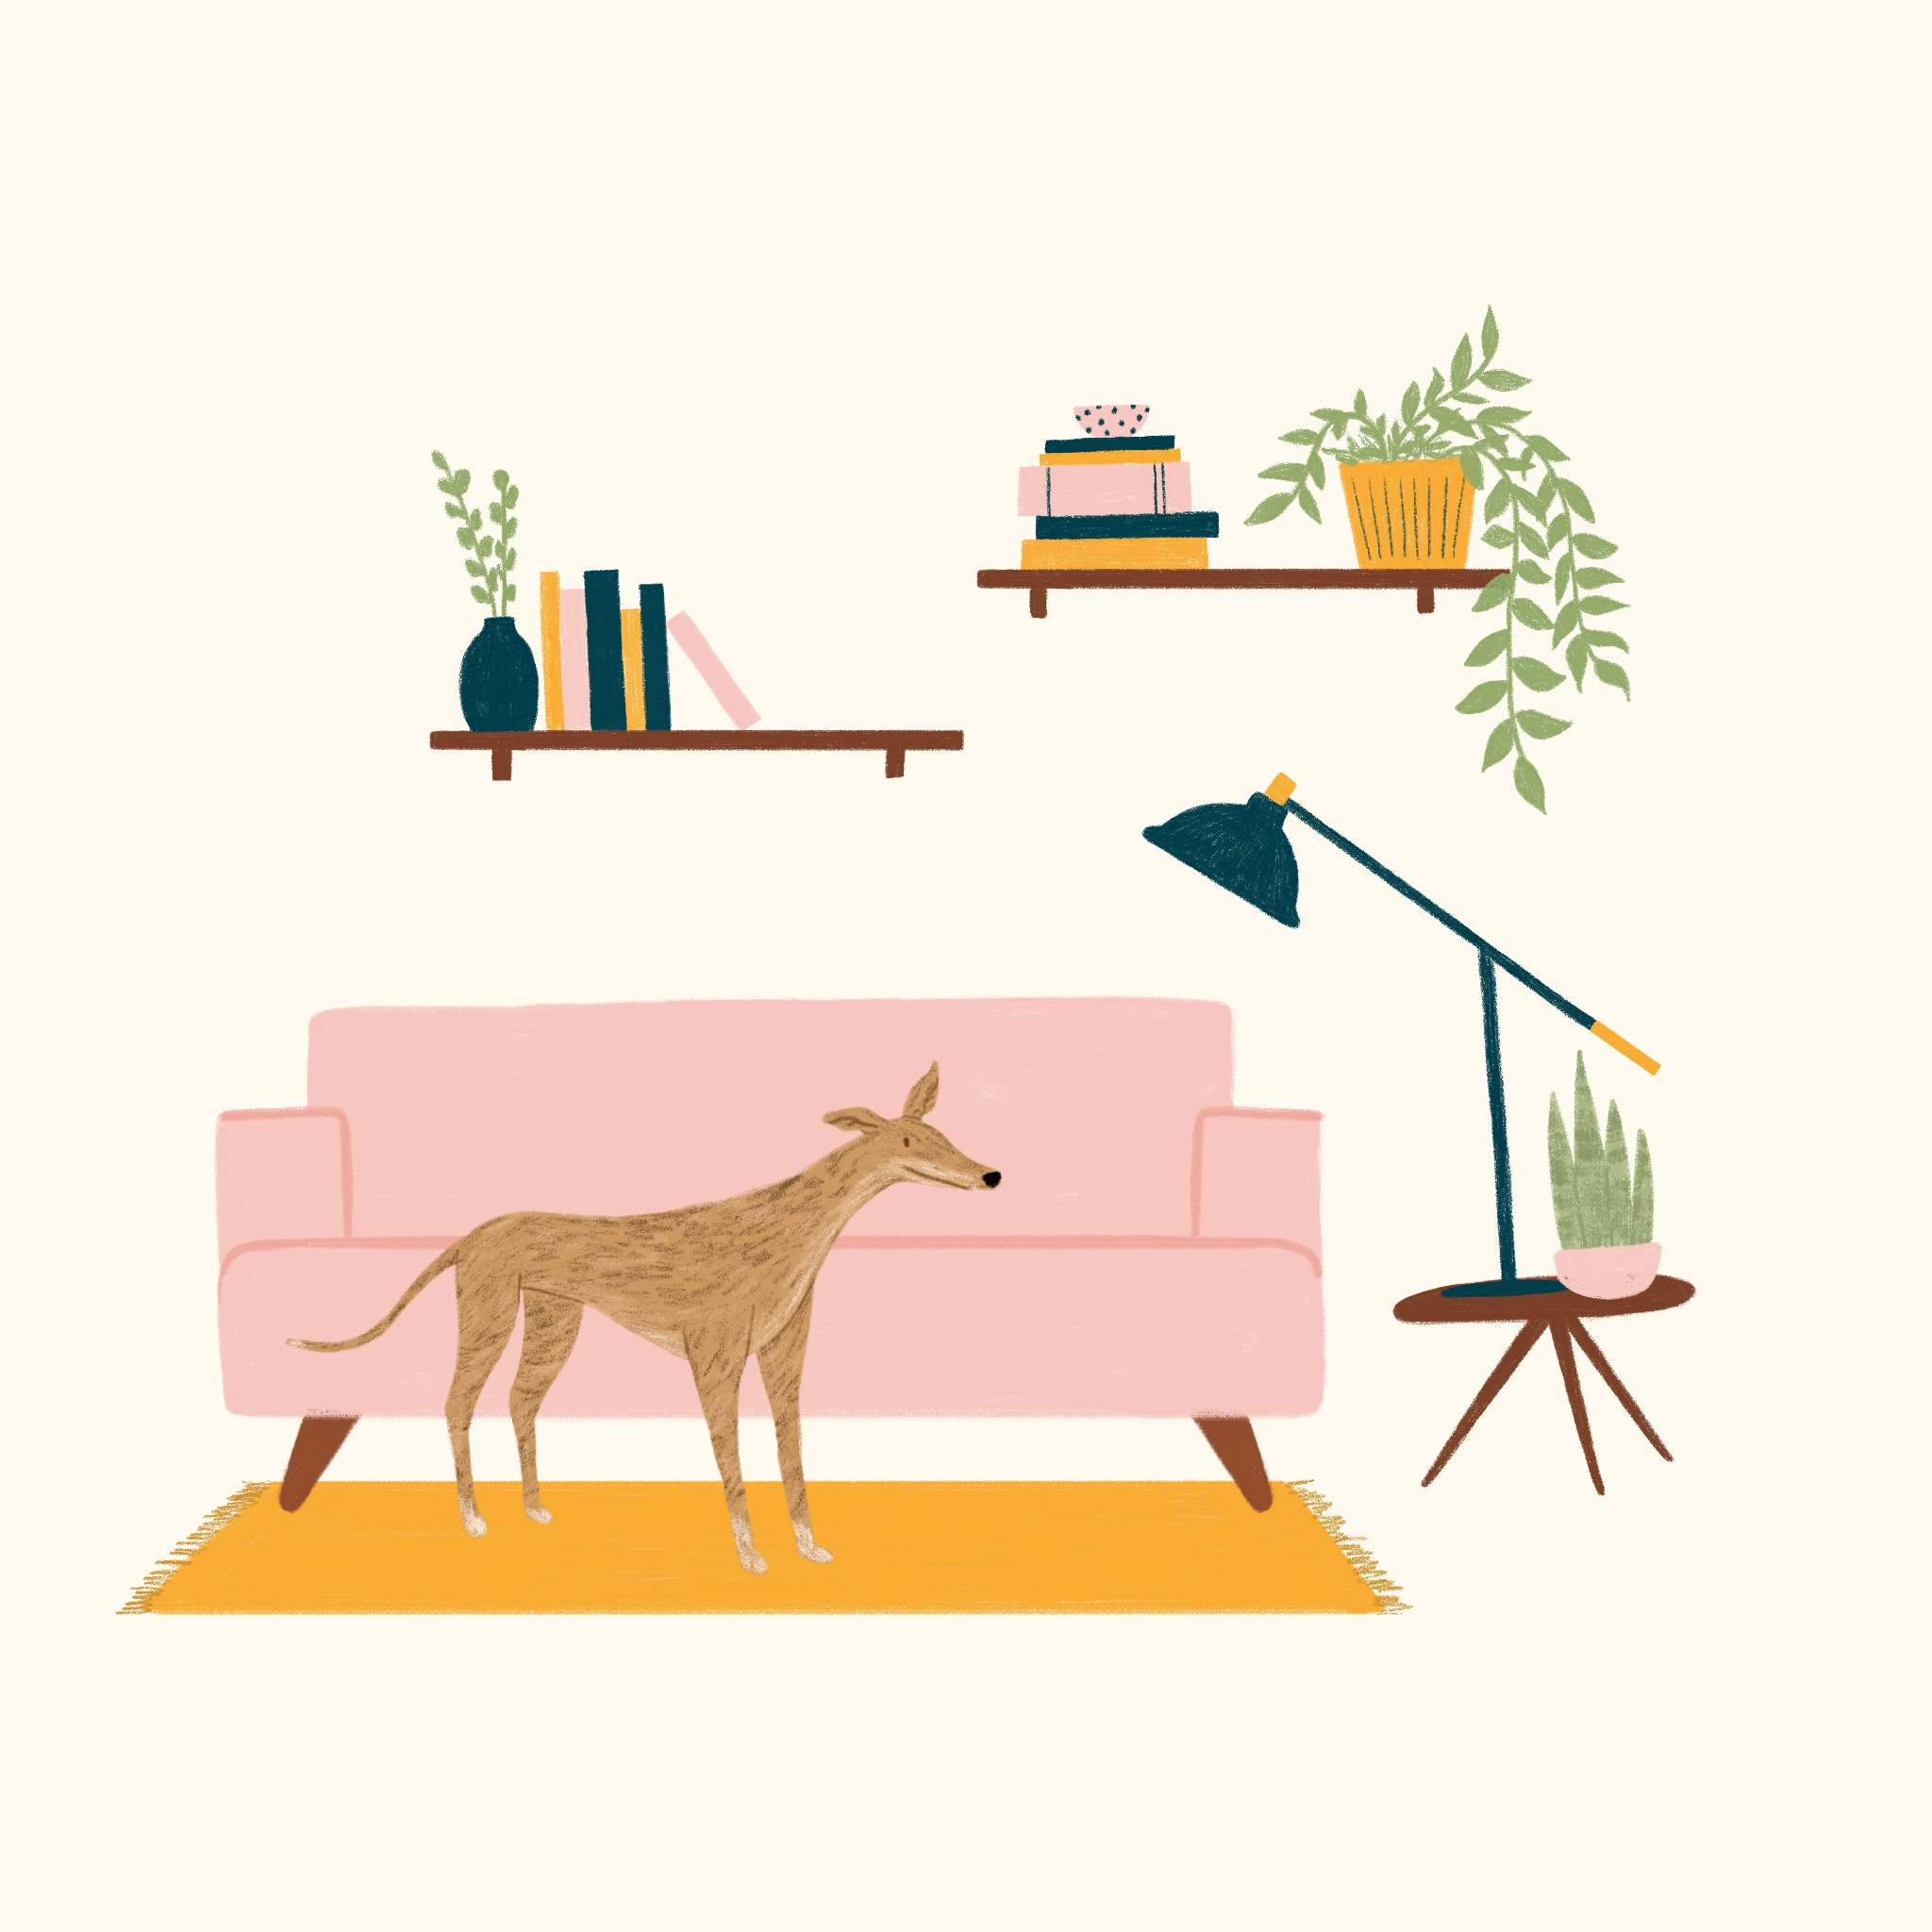 Illustration of a greyhound in a living room